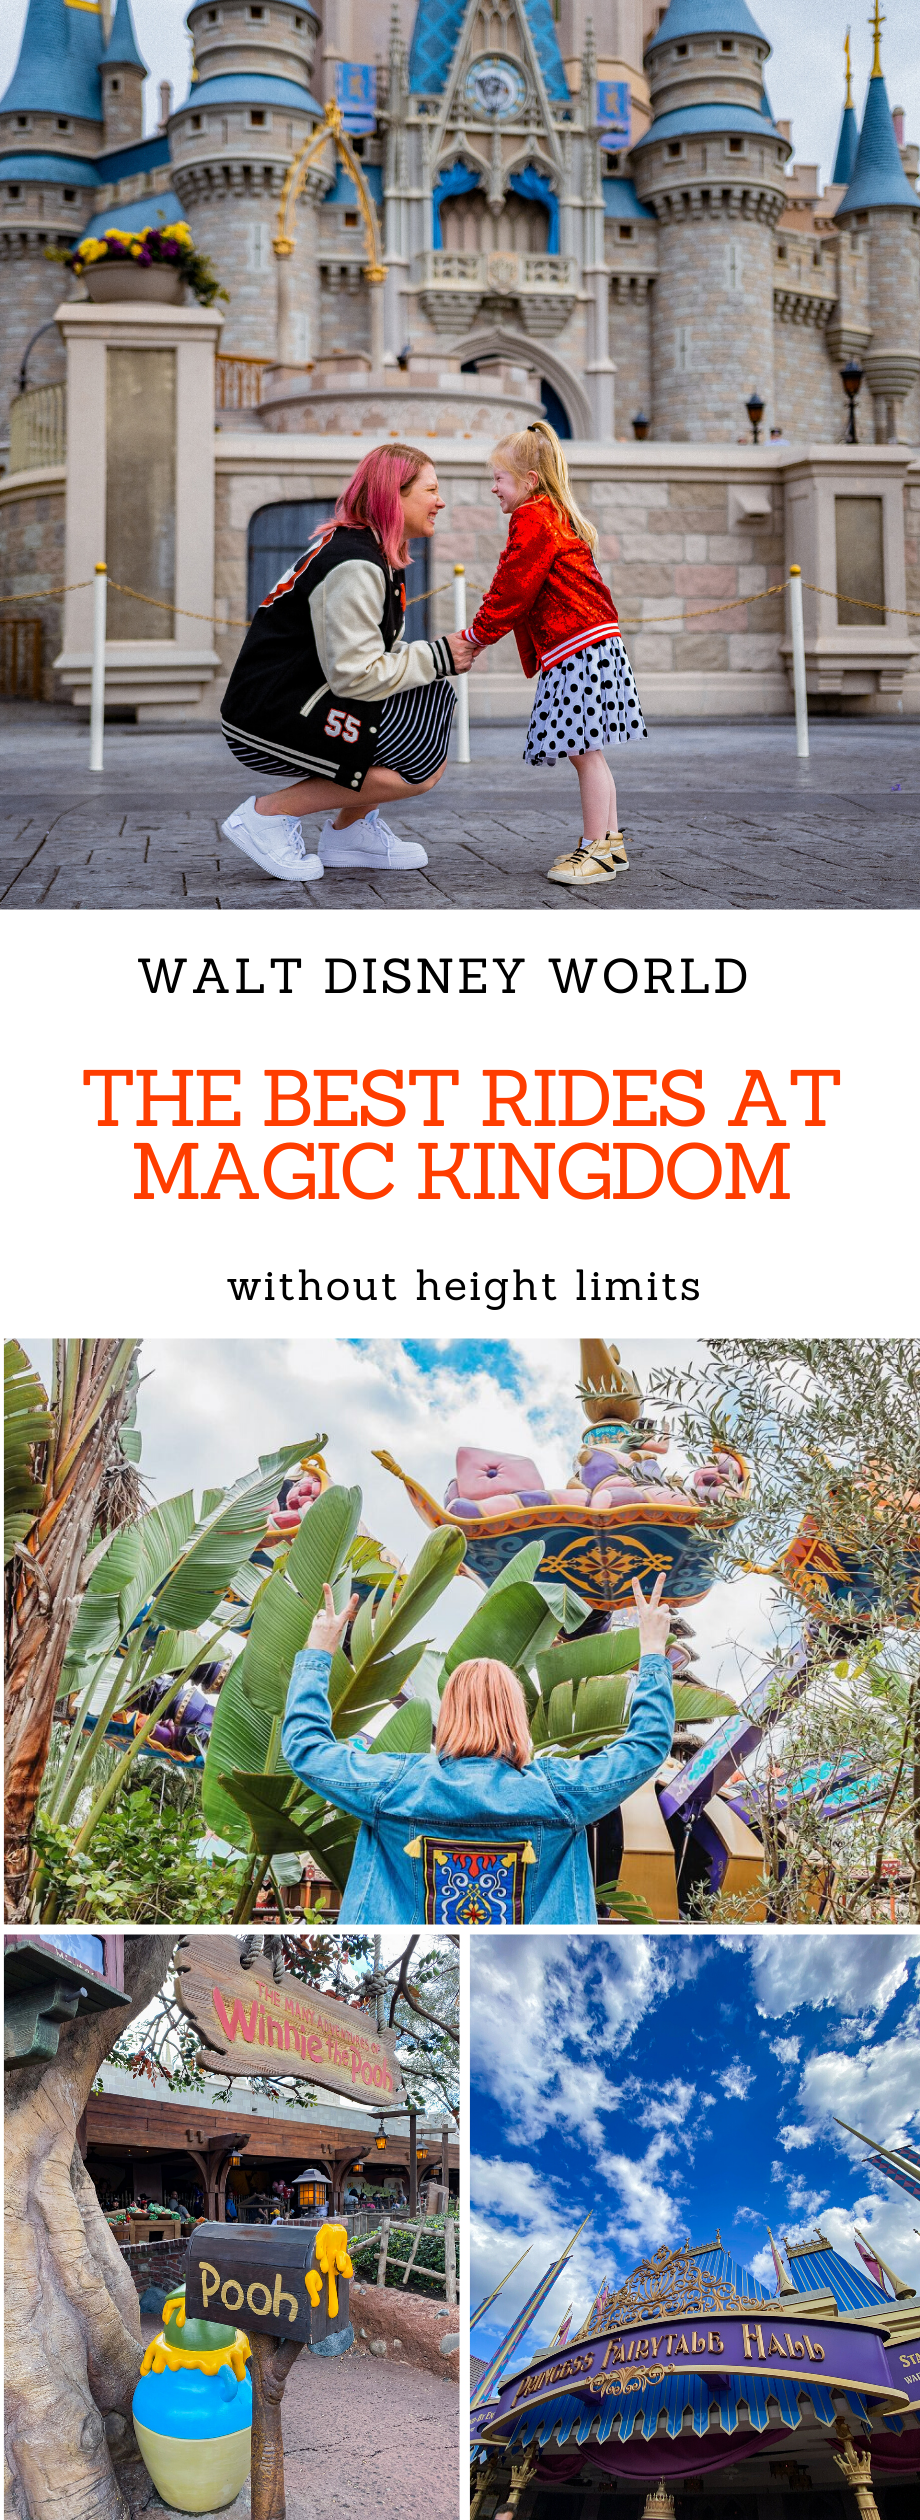 Looking for the Best Rides at Magic Kingdom that every member of the family can enjoy? These are your best options with low height limits!